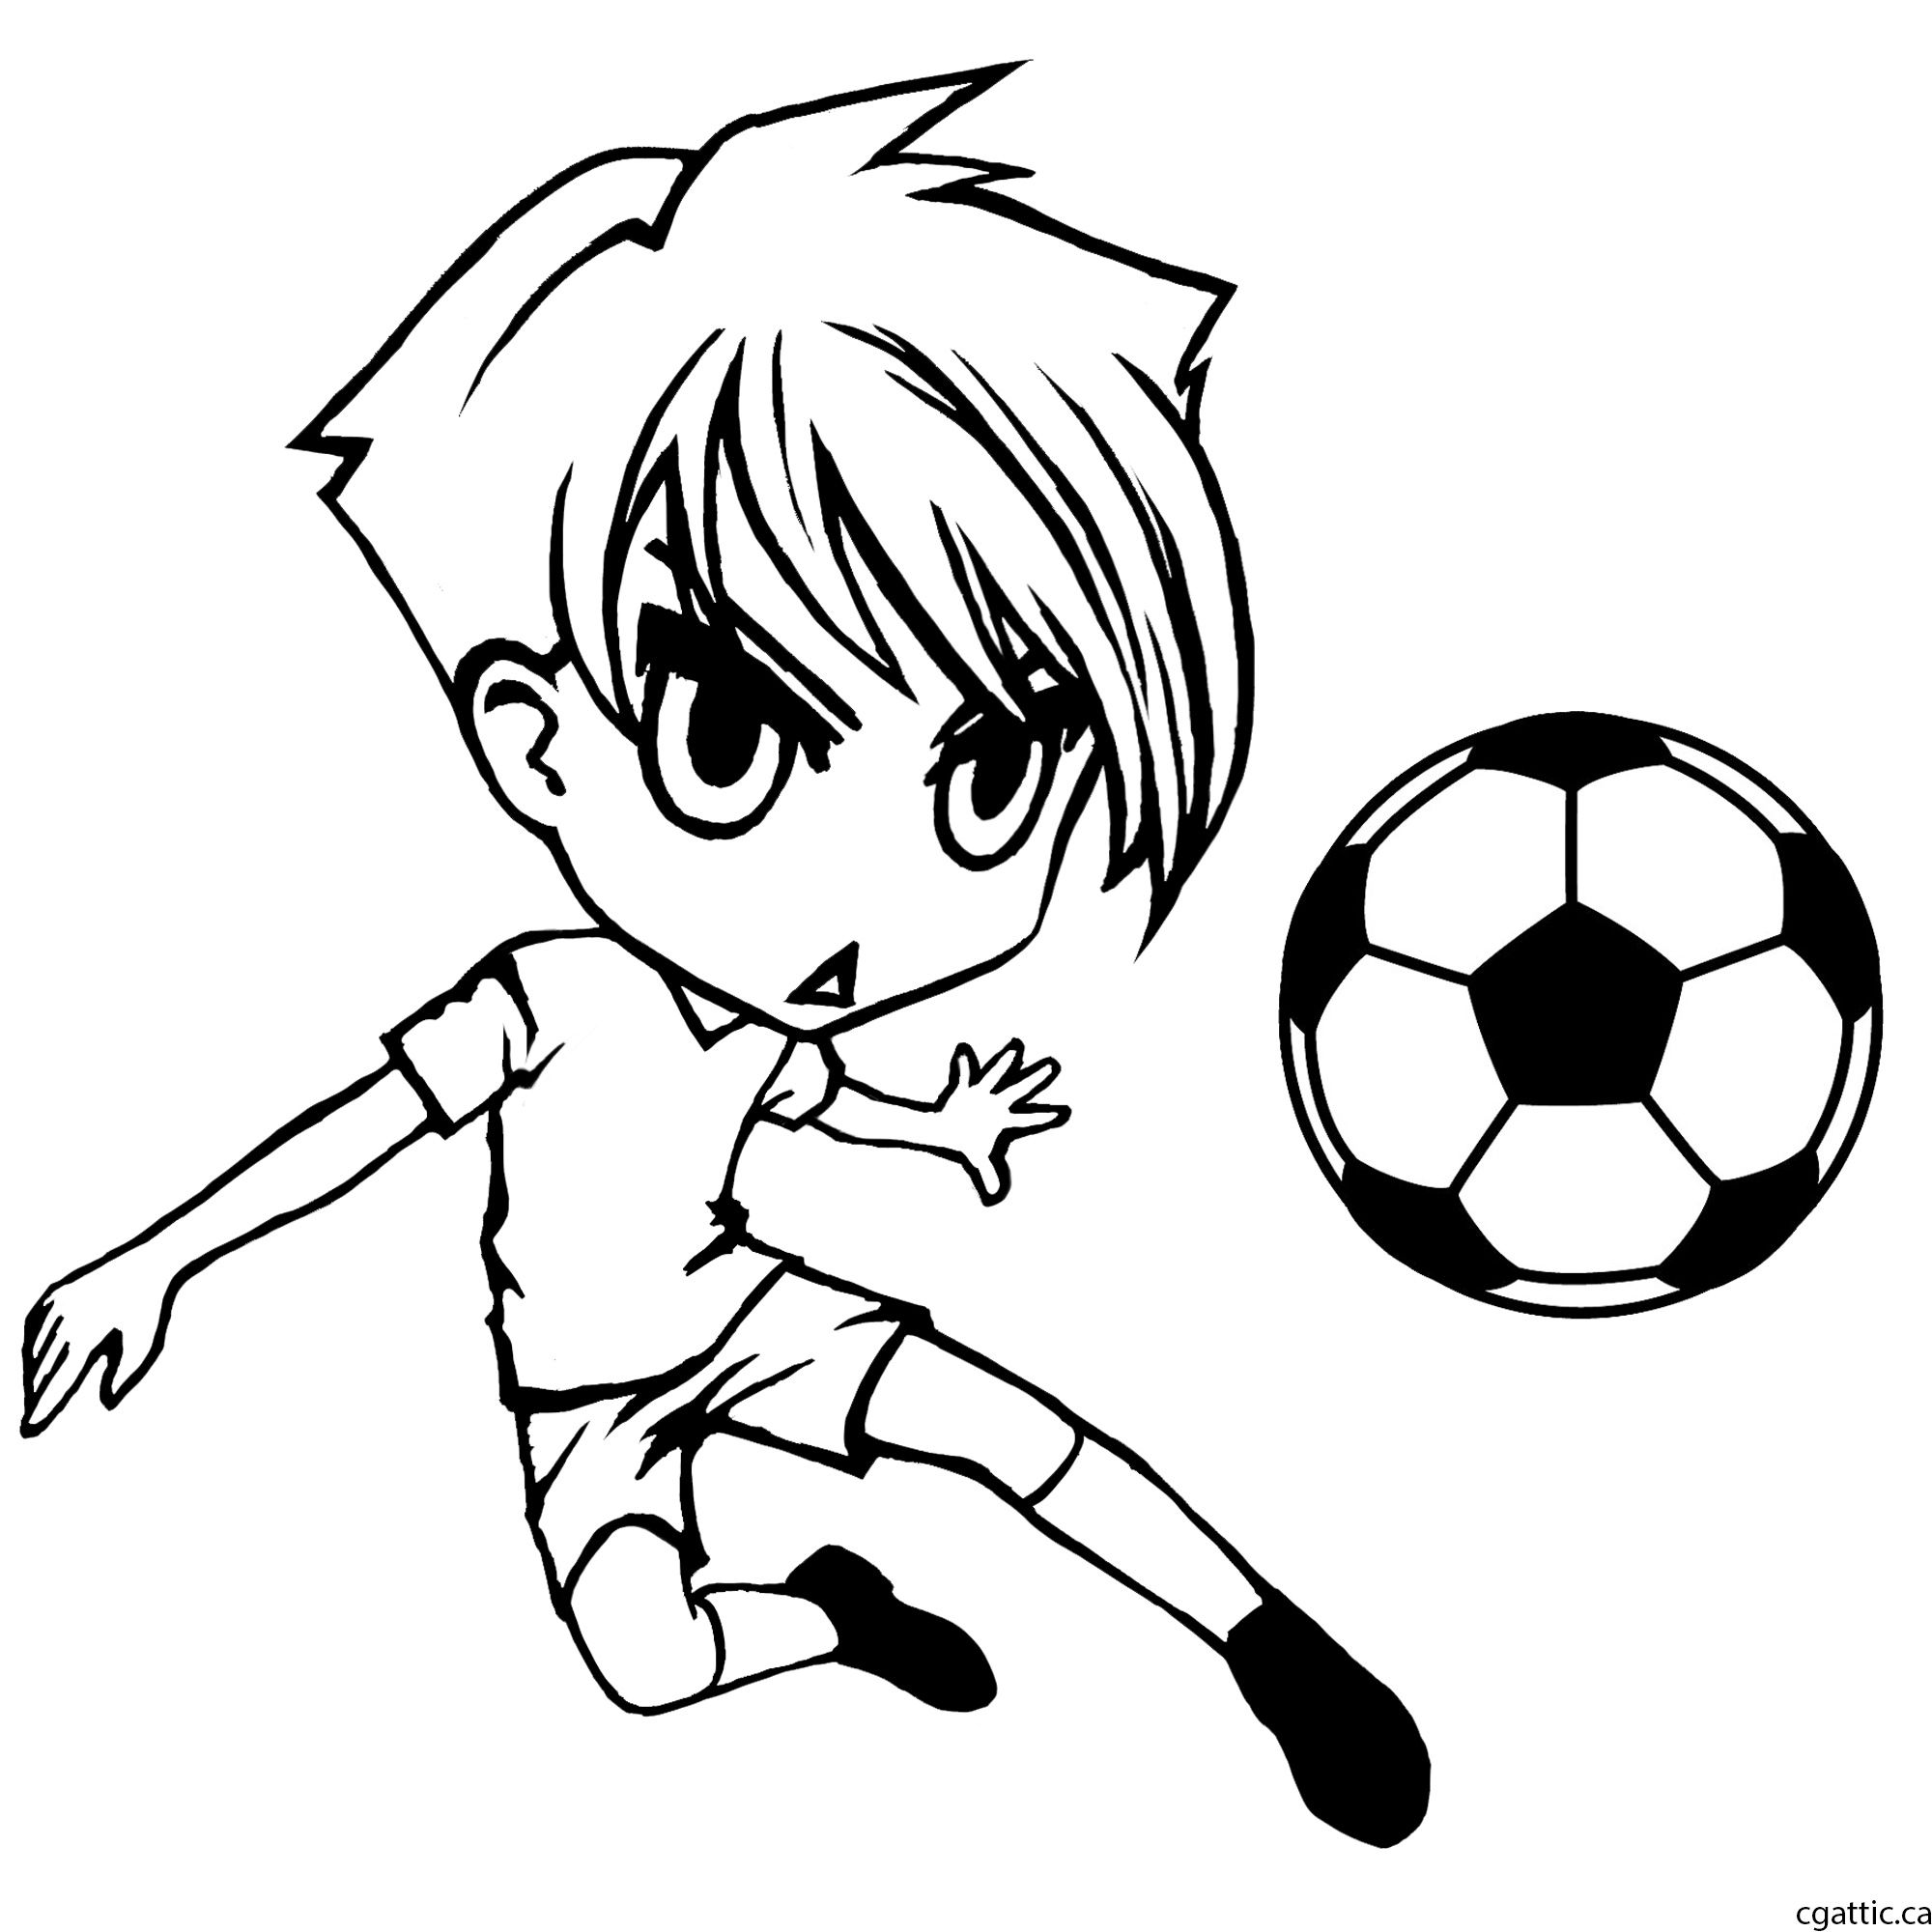 Cartoon Soccer Player Drawing In 4 Steps With Photoshop Easy Drawings Soccer Drawing Drawings